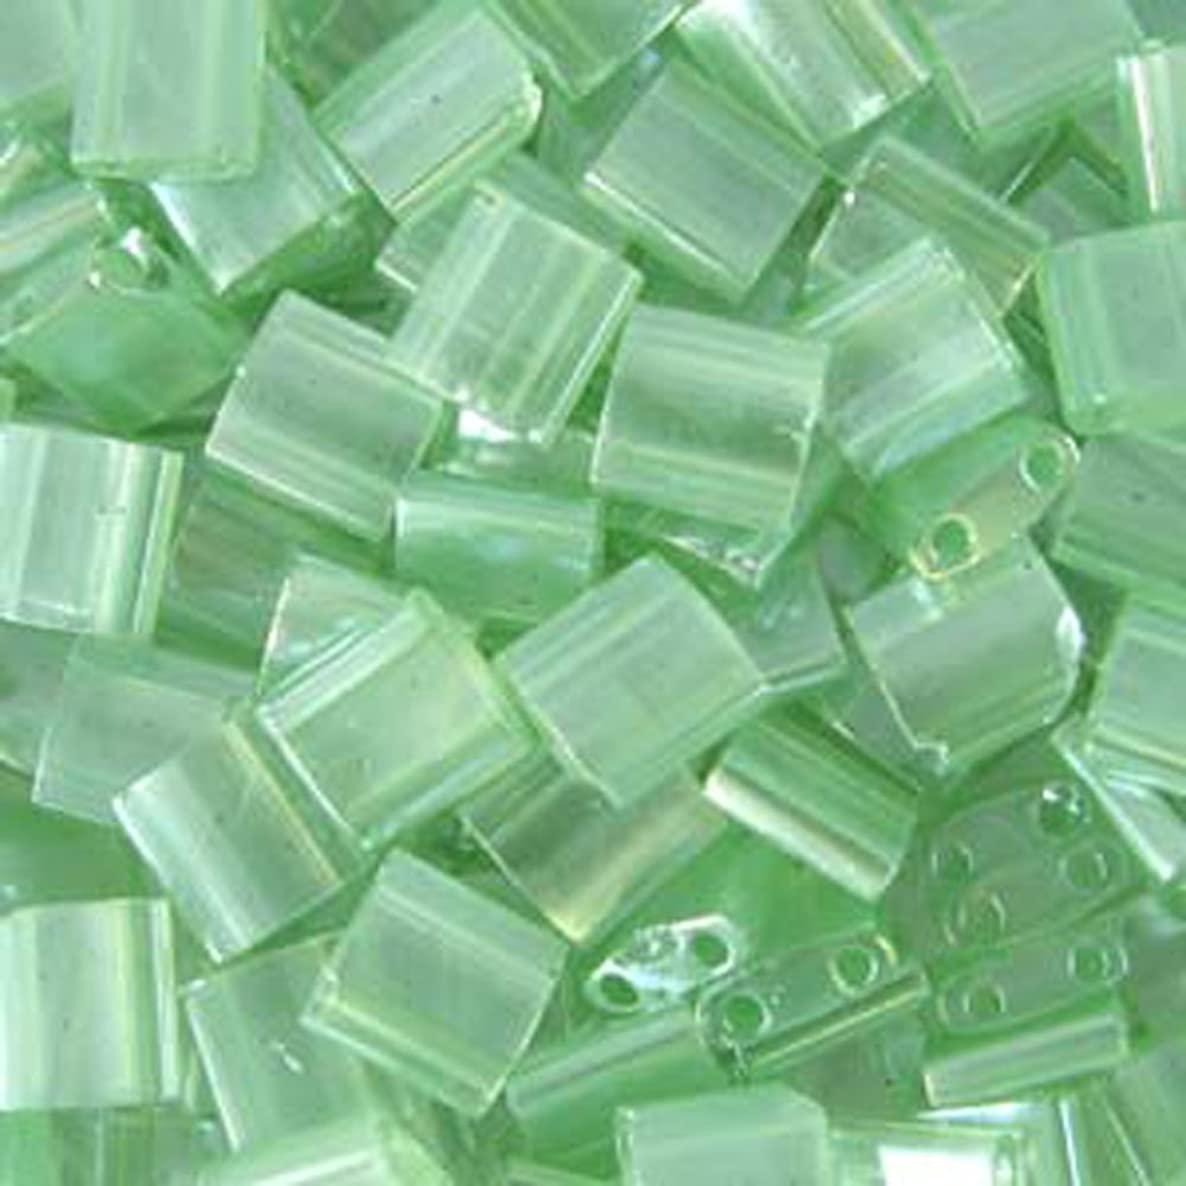 SEA Foam Green Luster Tila Beads 7.2 Gram Tube By Miyuki Are a 2 Hole Flat Square Seed Bead 5x5mm 1.9mm Thick with .8mm Holes